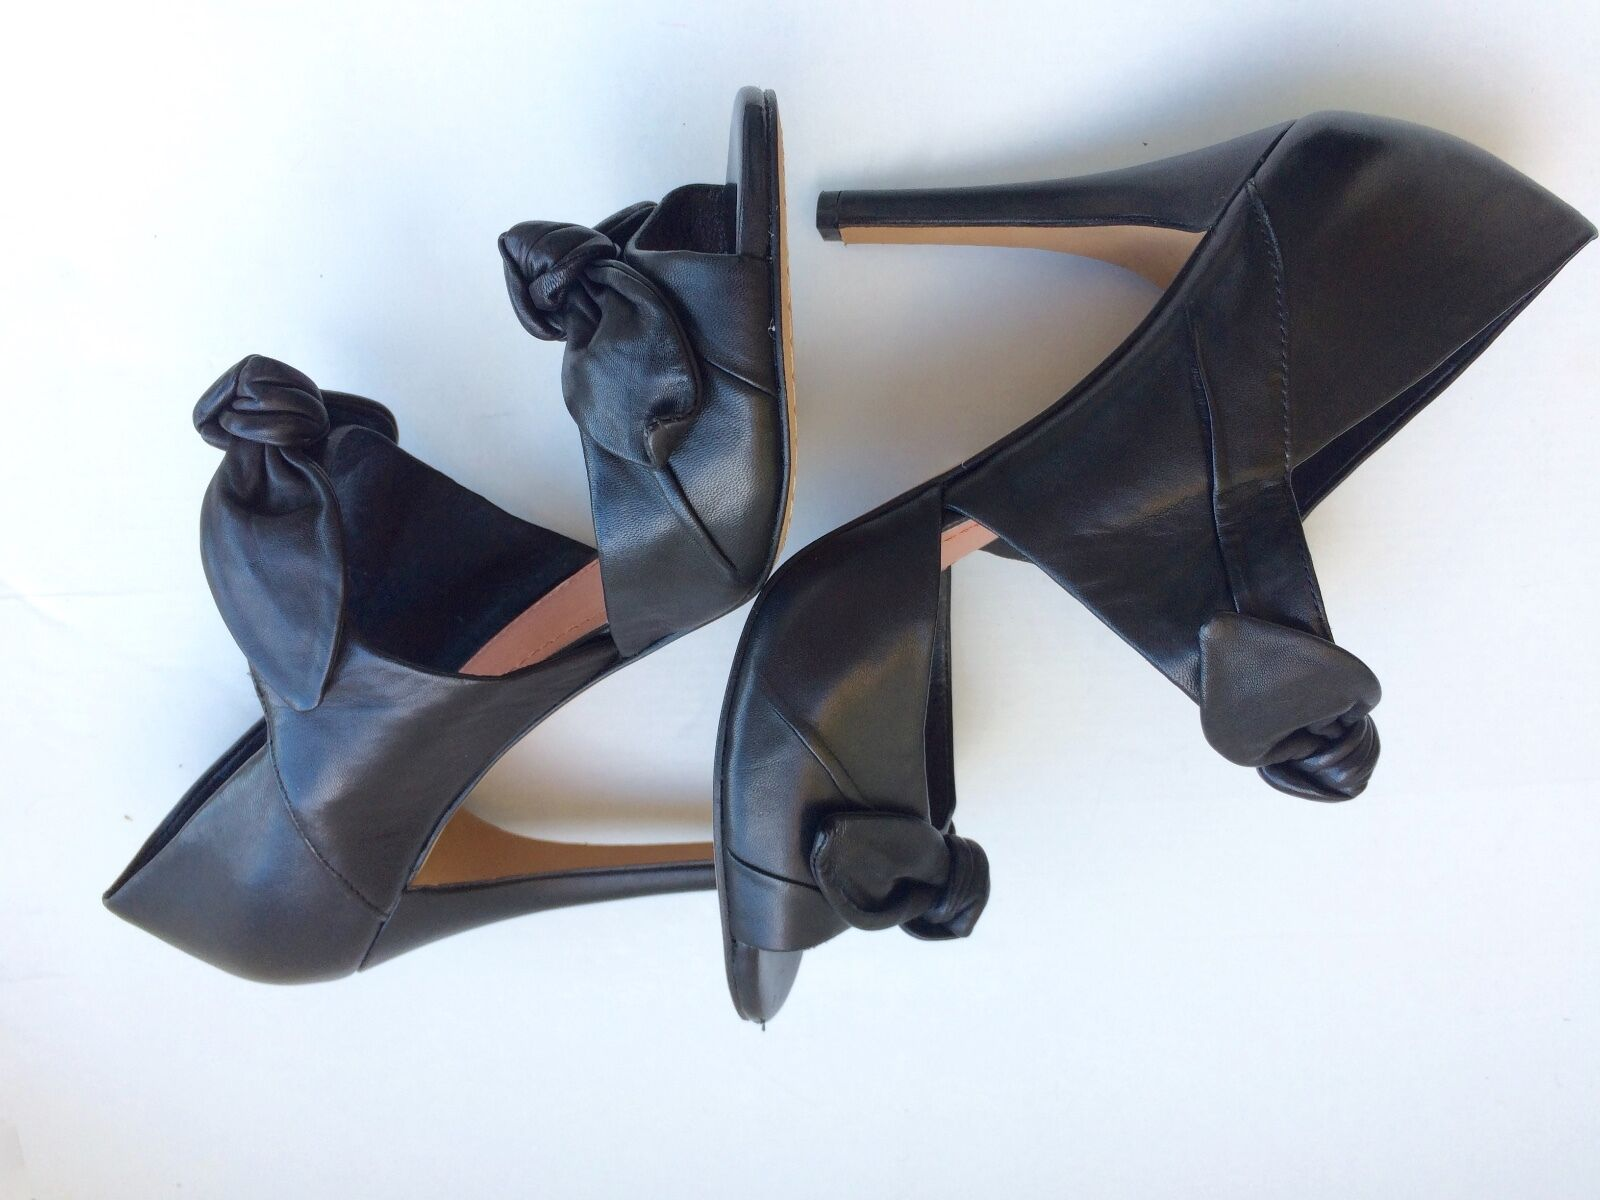 alto sconto Vince Camuto nero Leather 4in. Heel with two bows across across across ankle & top of foot  in linea